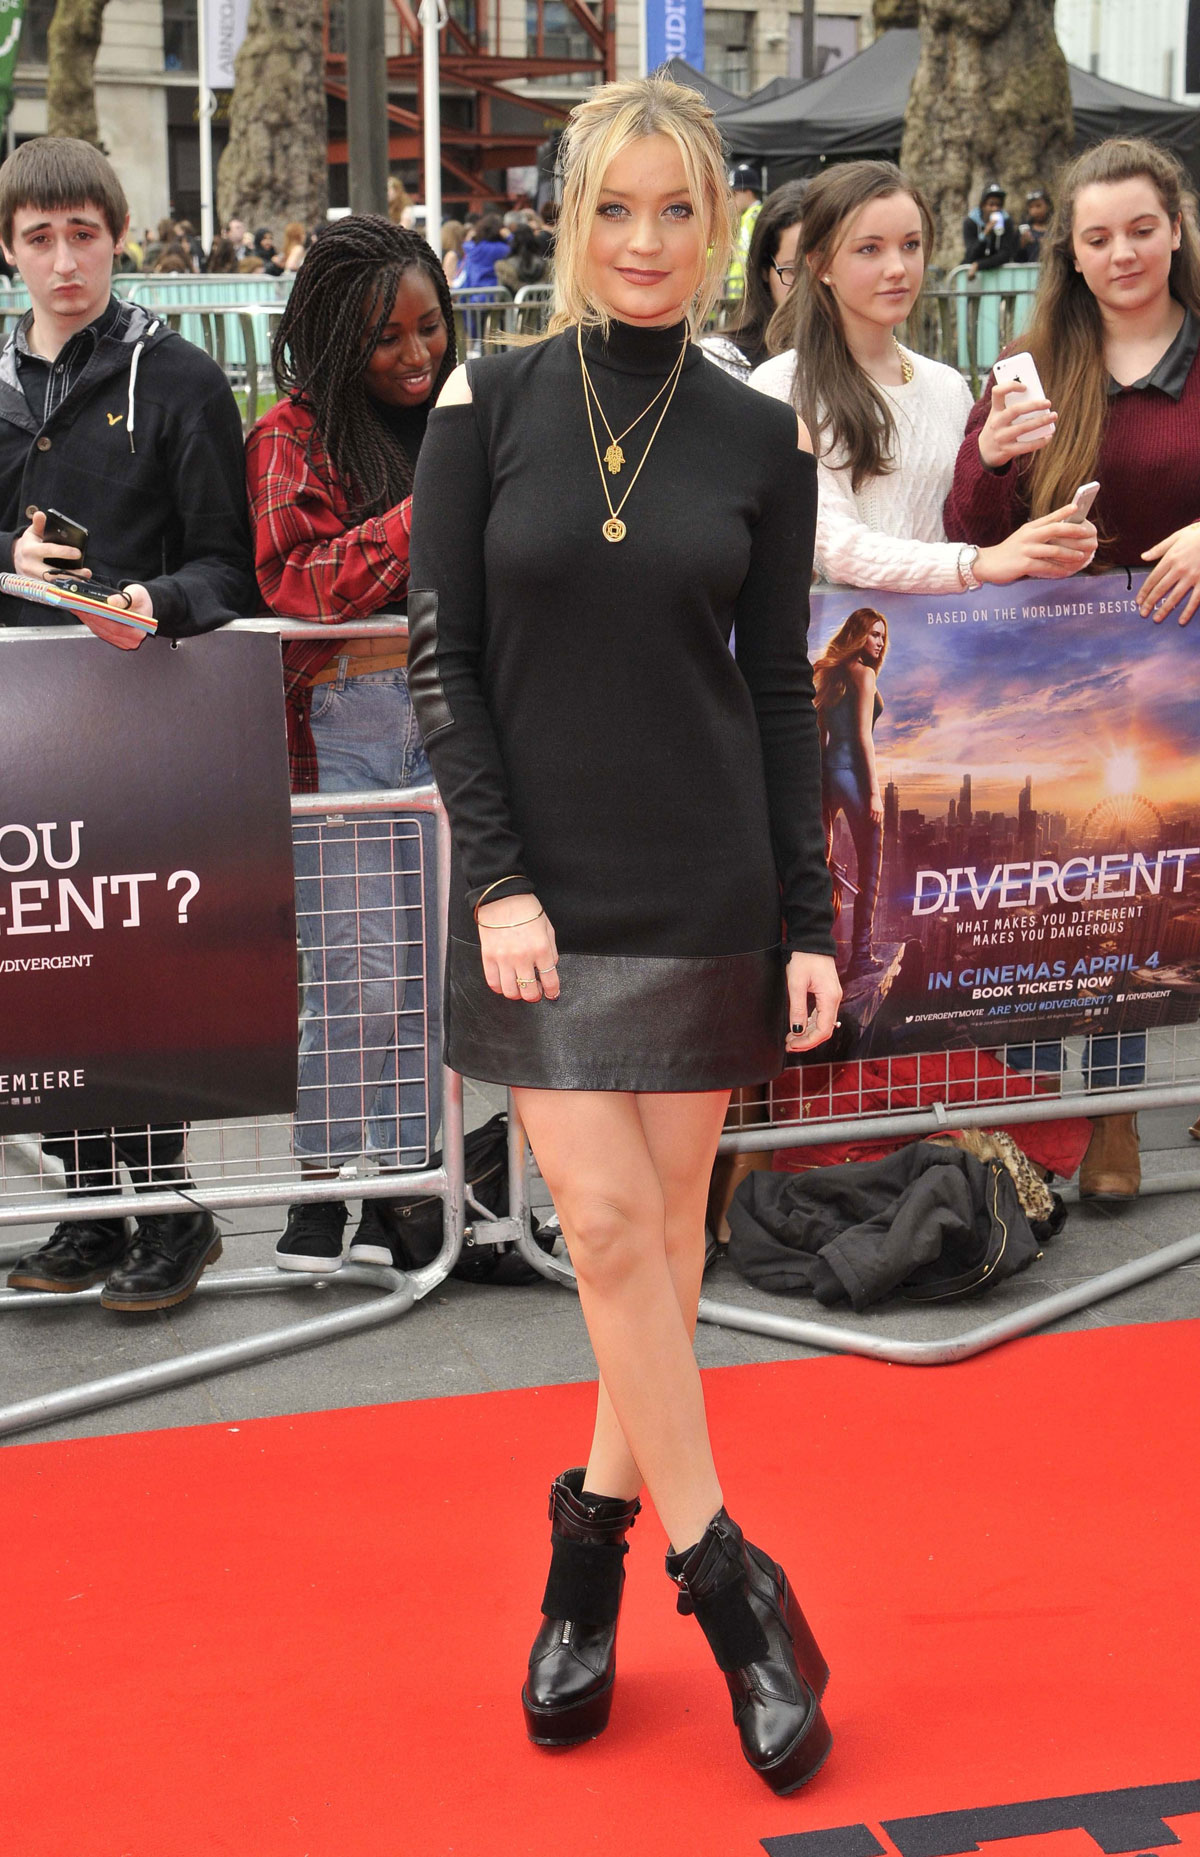 Laura Whitmore attends the European premiere of Divergent